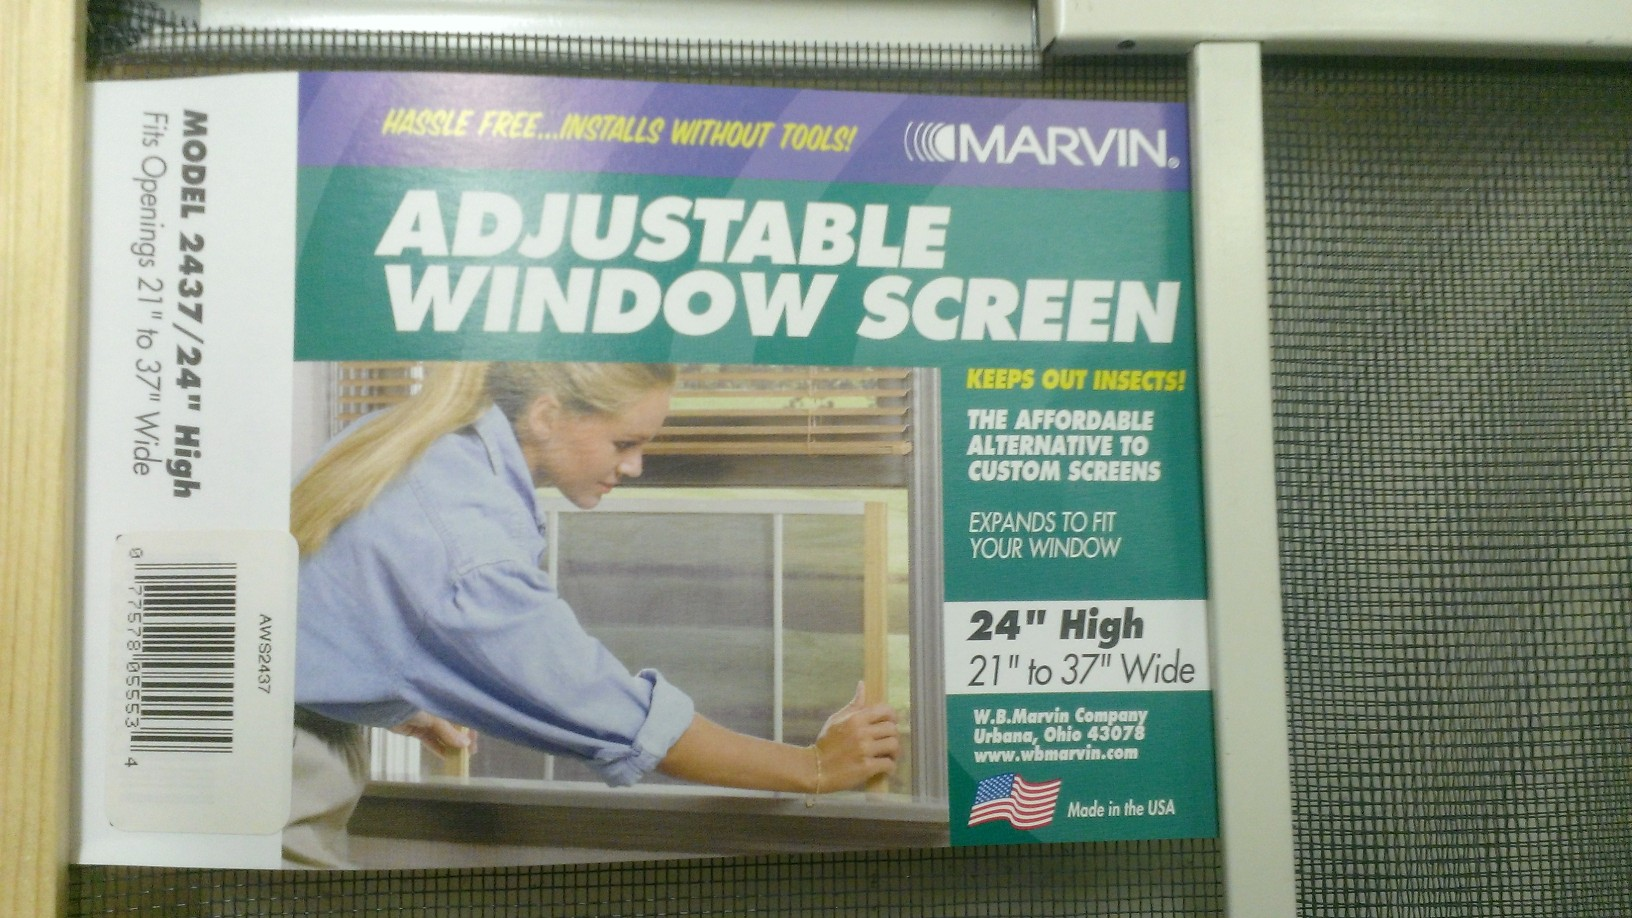 Adjustable Window Screen Made By Wb Marvin Manufacturing Co Of Urbana,  Ohio